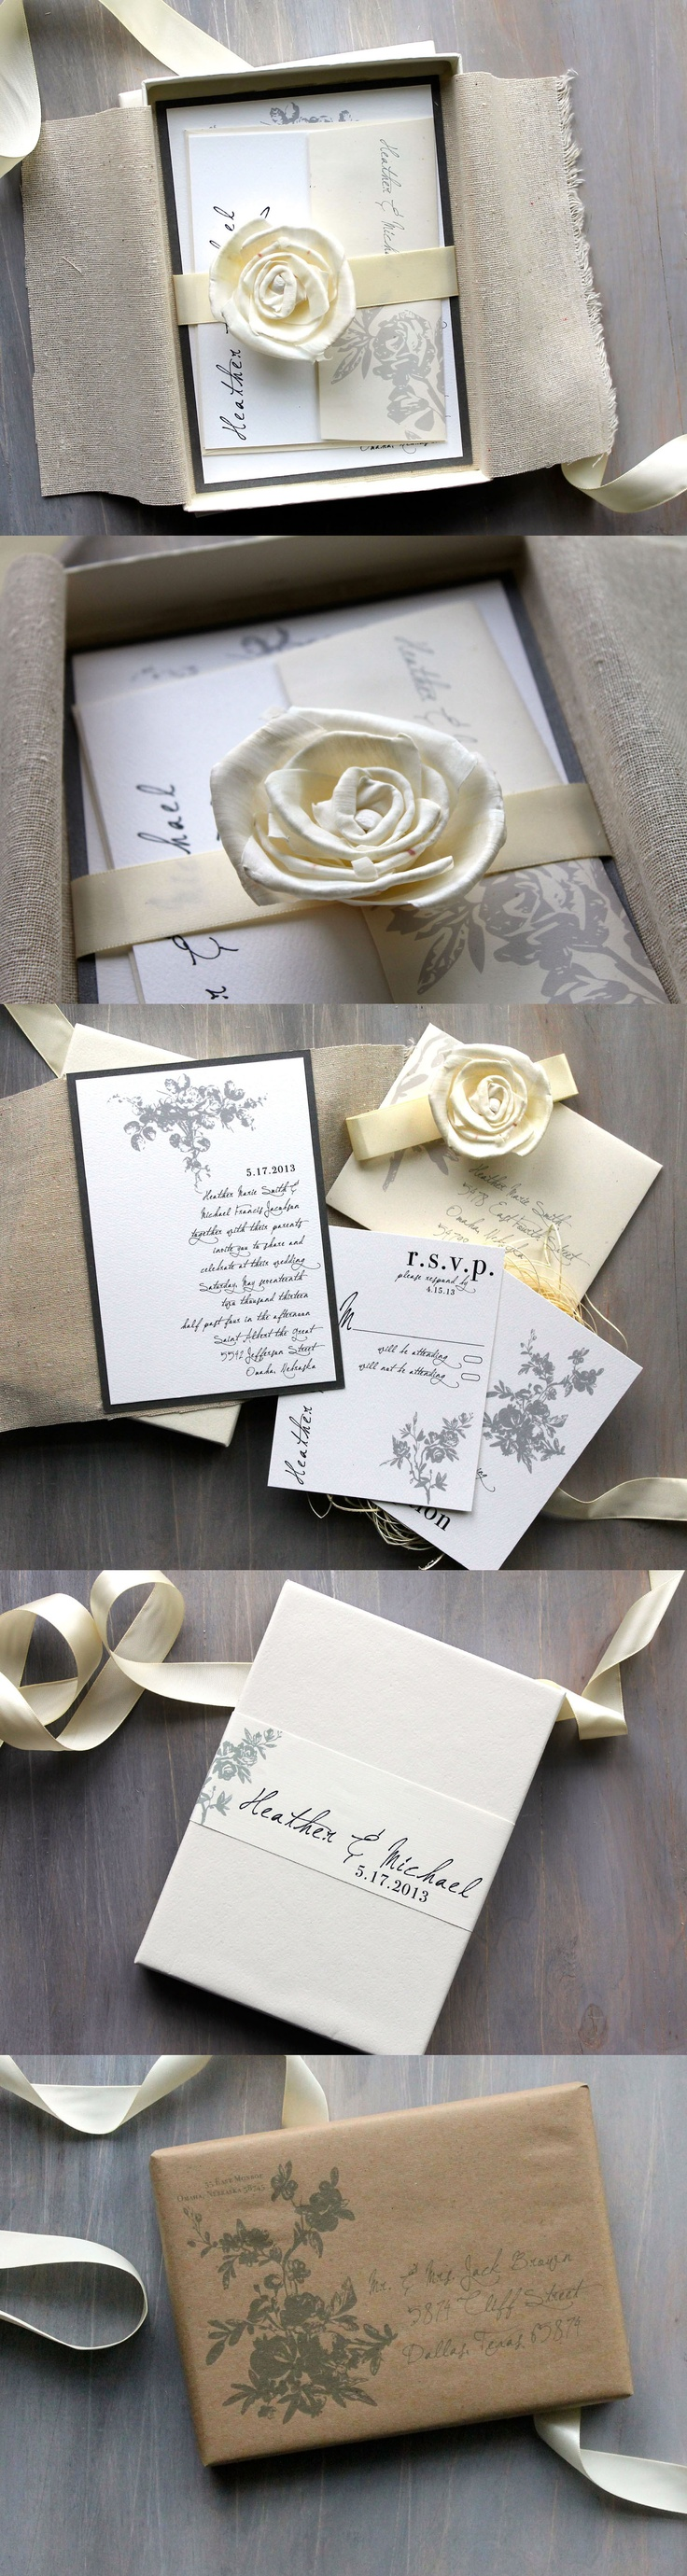 75 Best Boxed Wedding Invitations Images By Christine Gun On